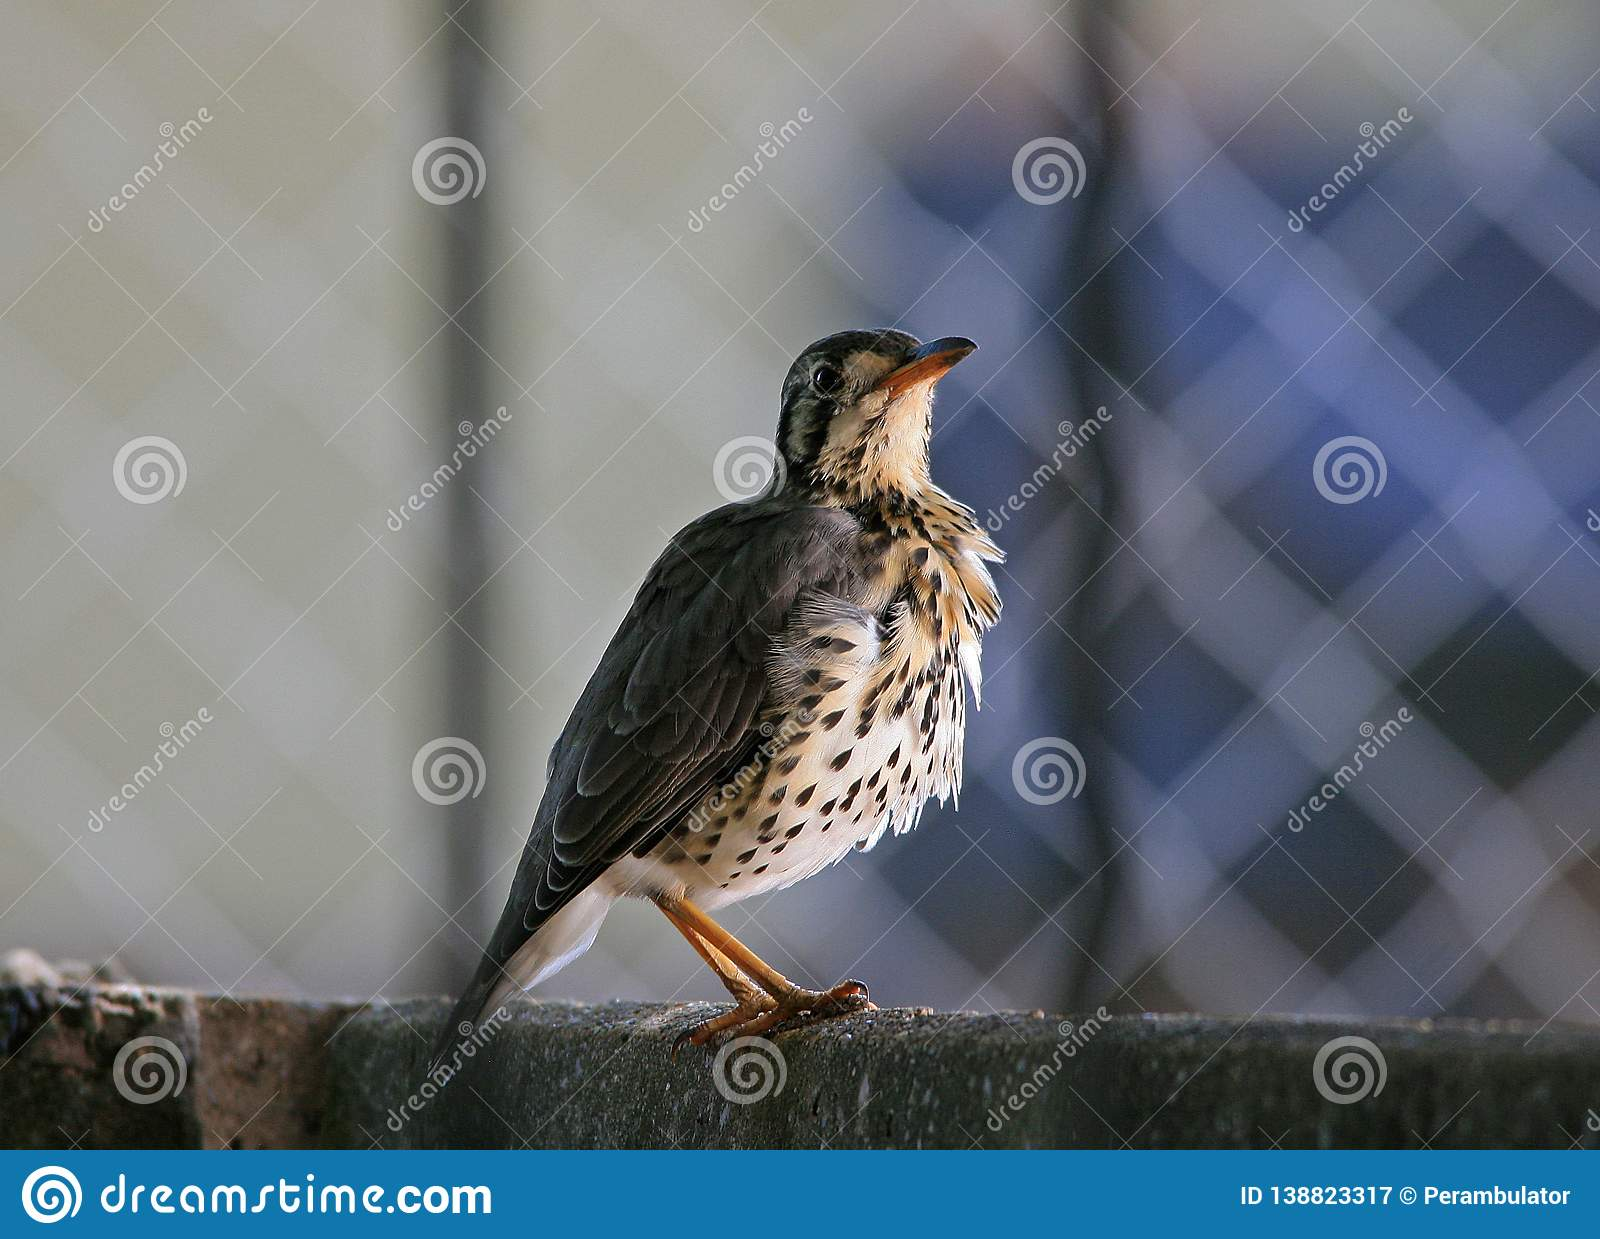 GROUNDSCRAPER THRUSH ON A WALL LOOKING UPWARDS